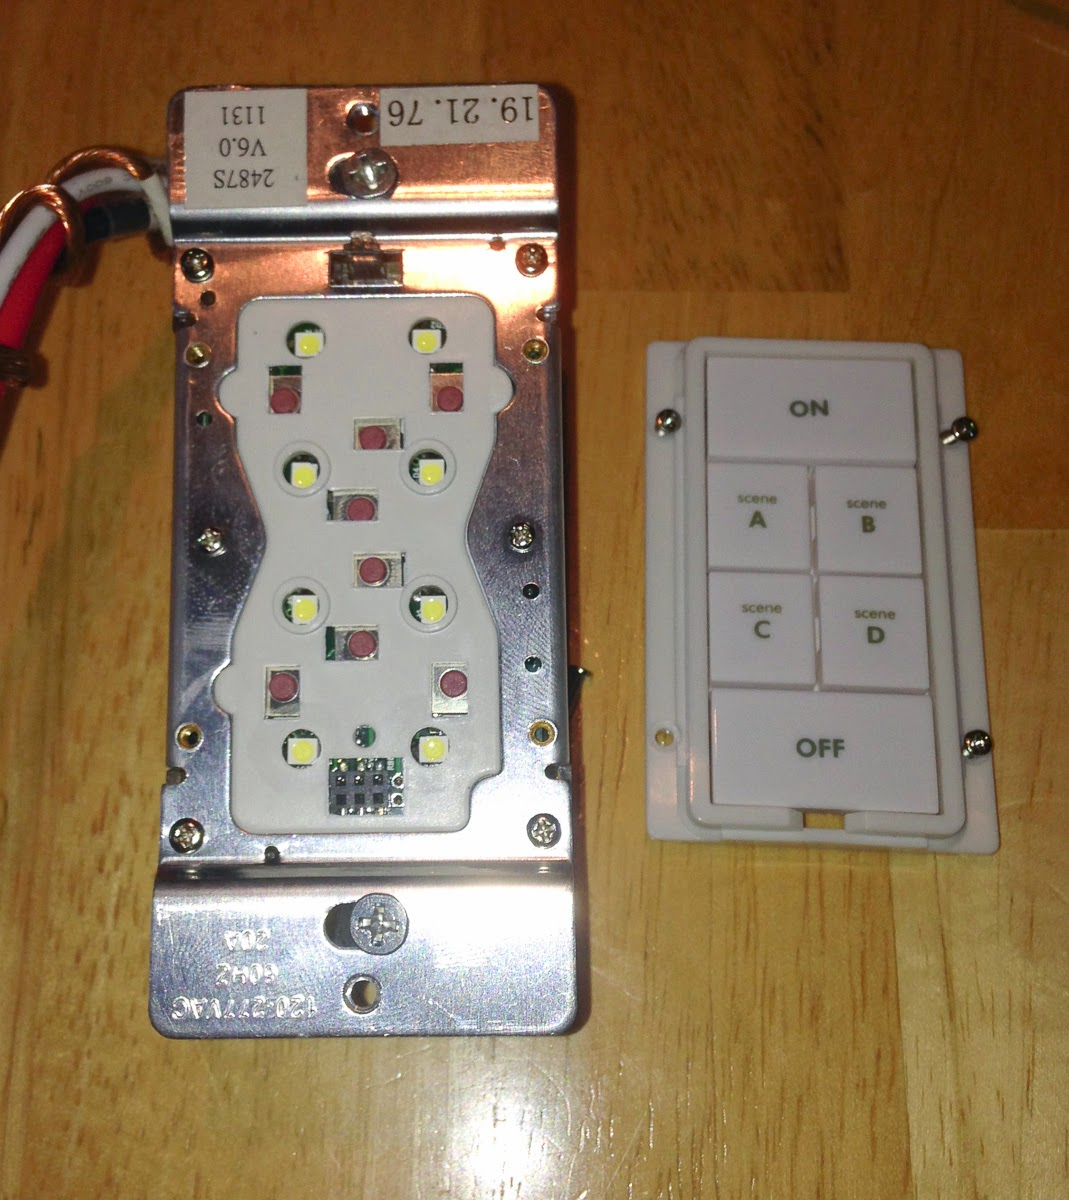 Glen S Home Automation Converting Insteon 6 Button